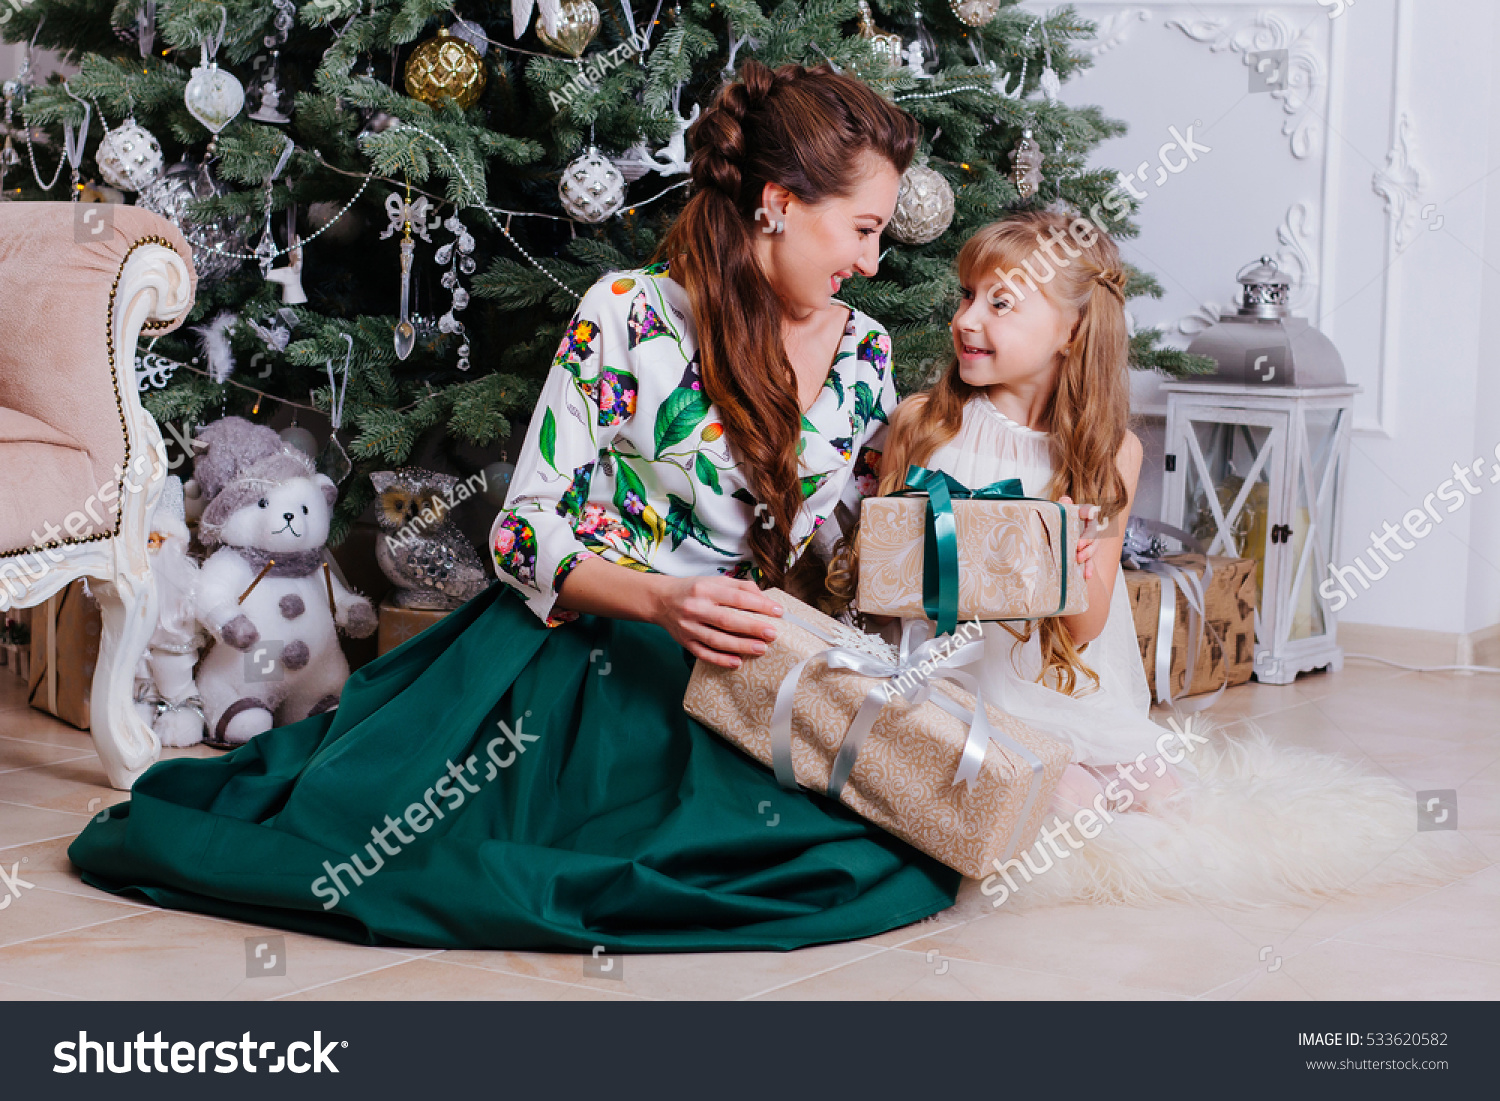 S woman in party dress decorating indoor christmas tree